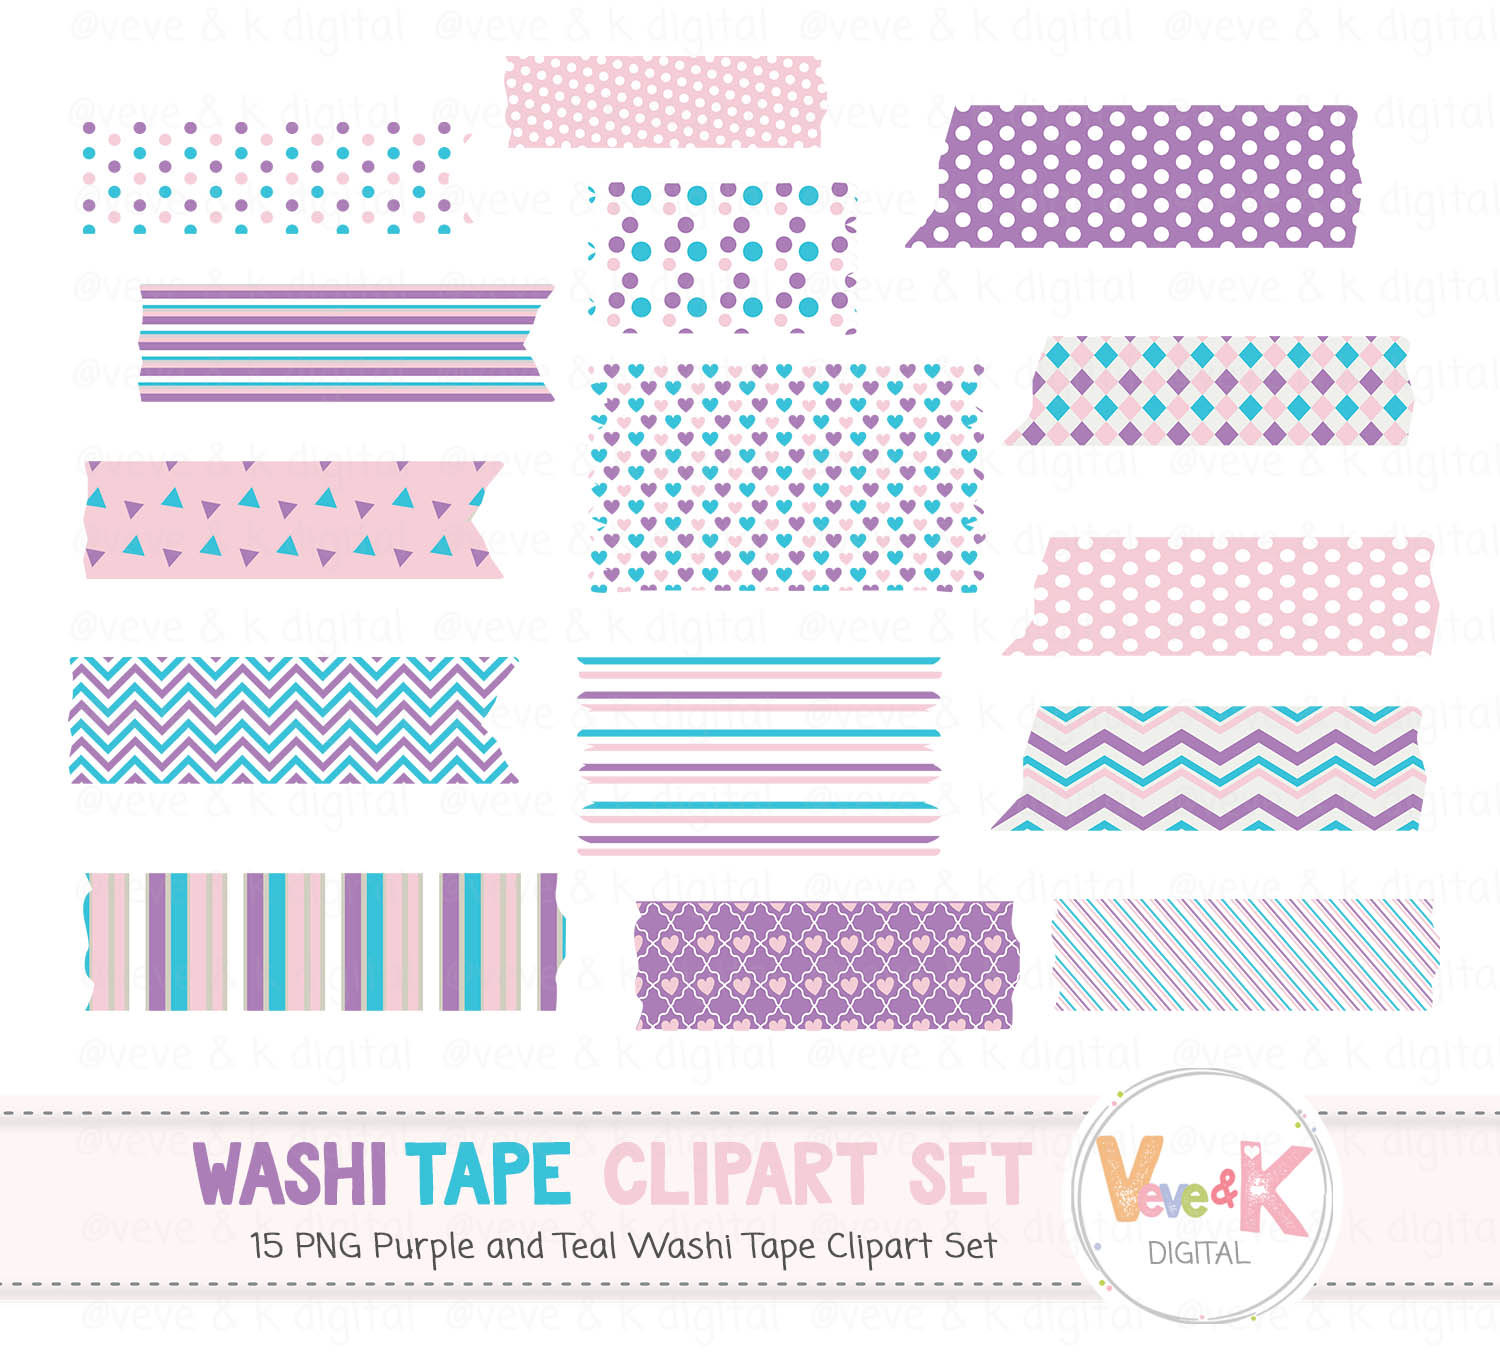 Digital washi tape clipart free graphic free stock Washi Tape Png (+) - Free Download | fourjay.org graphic free stock